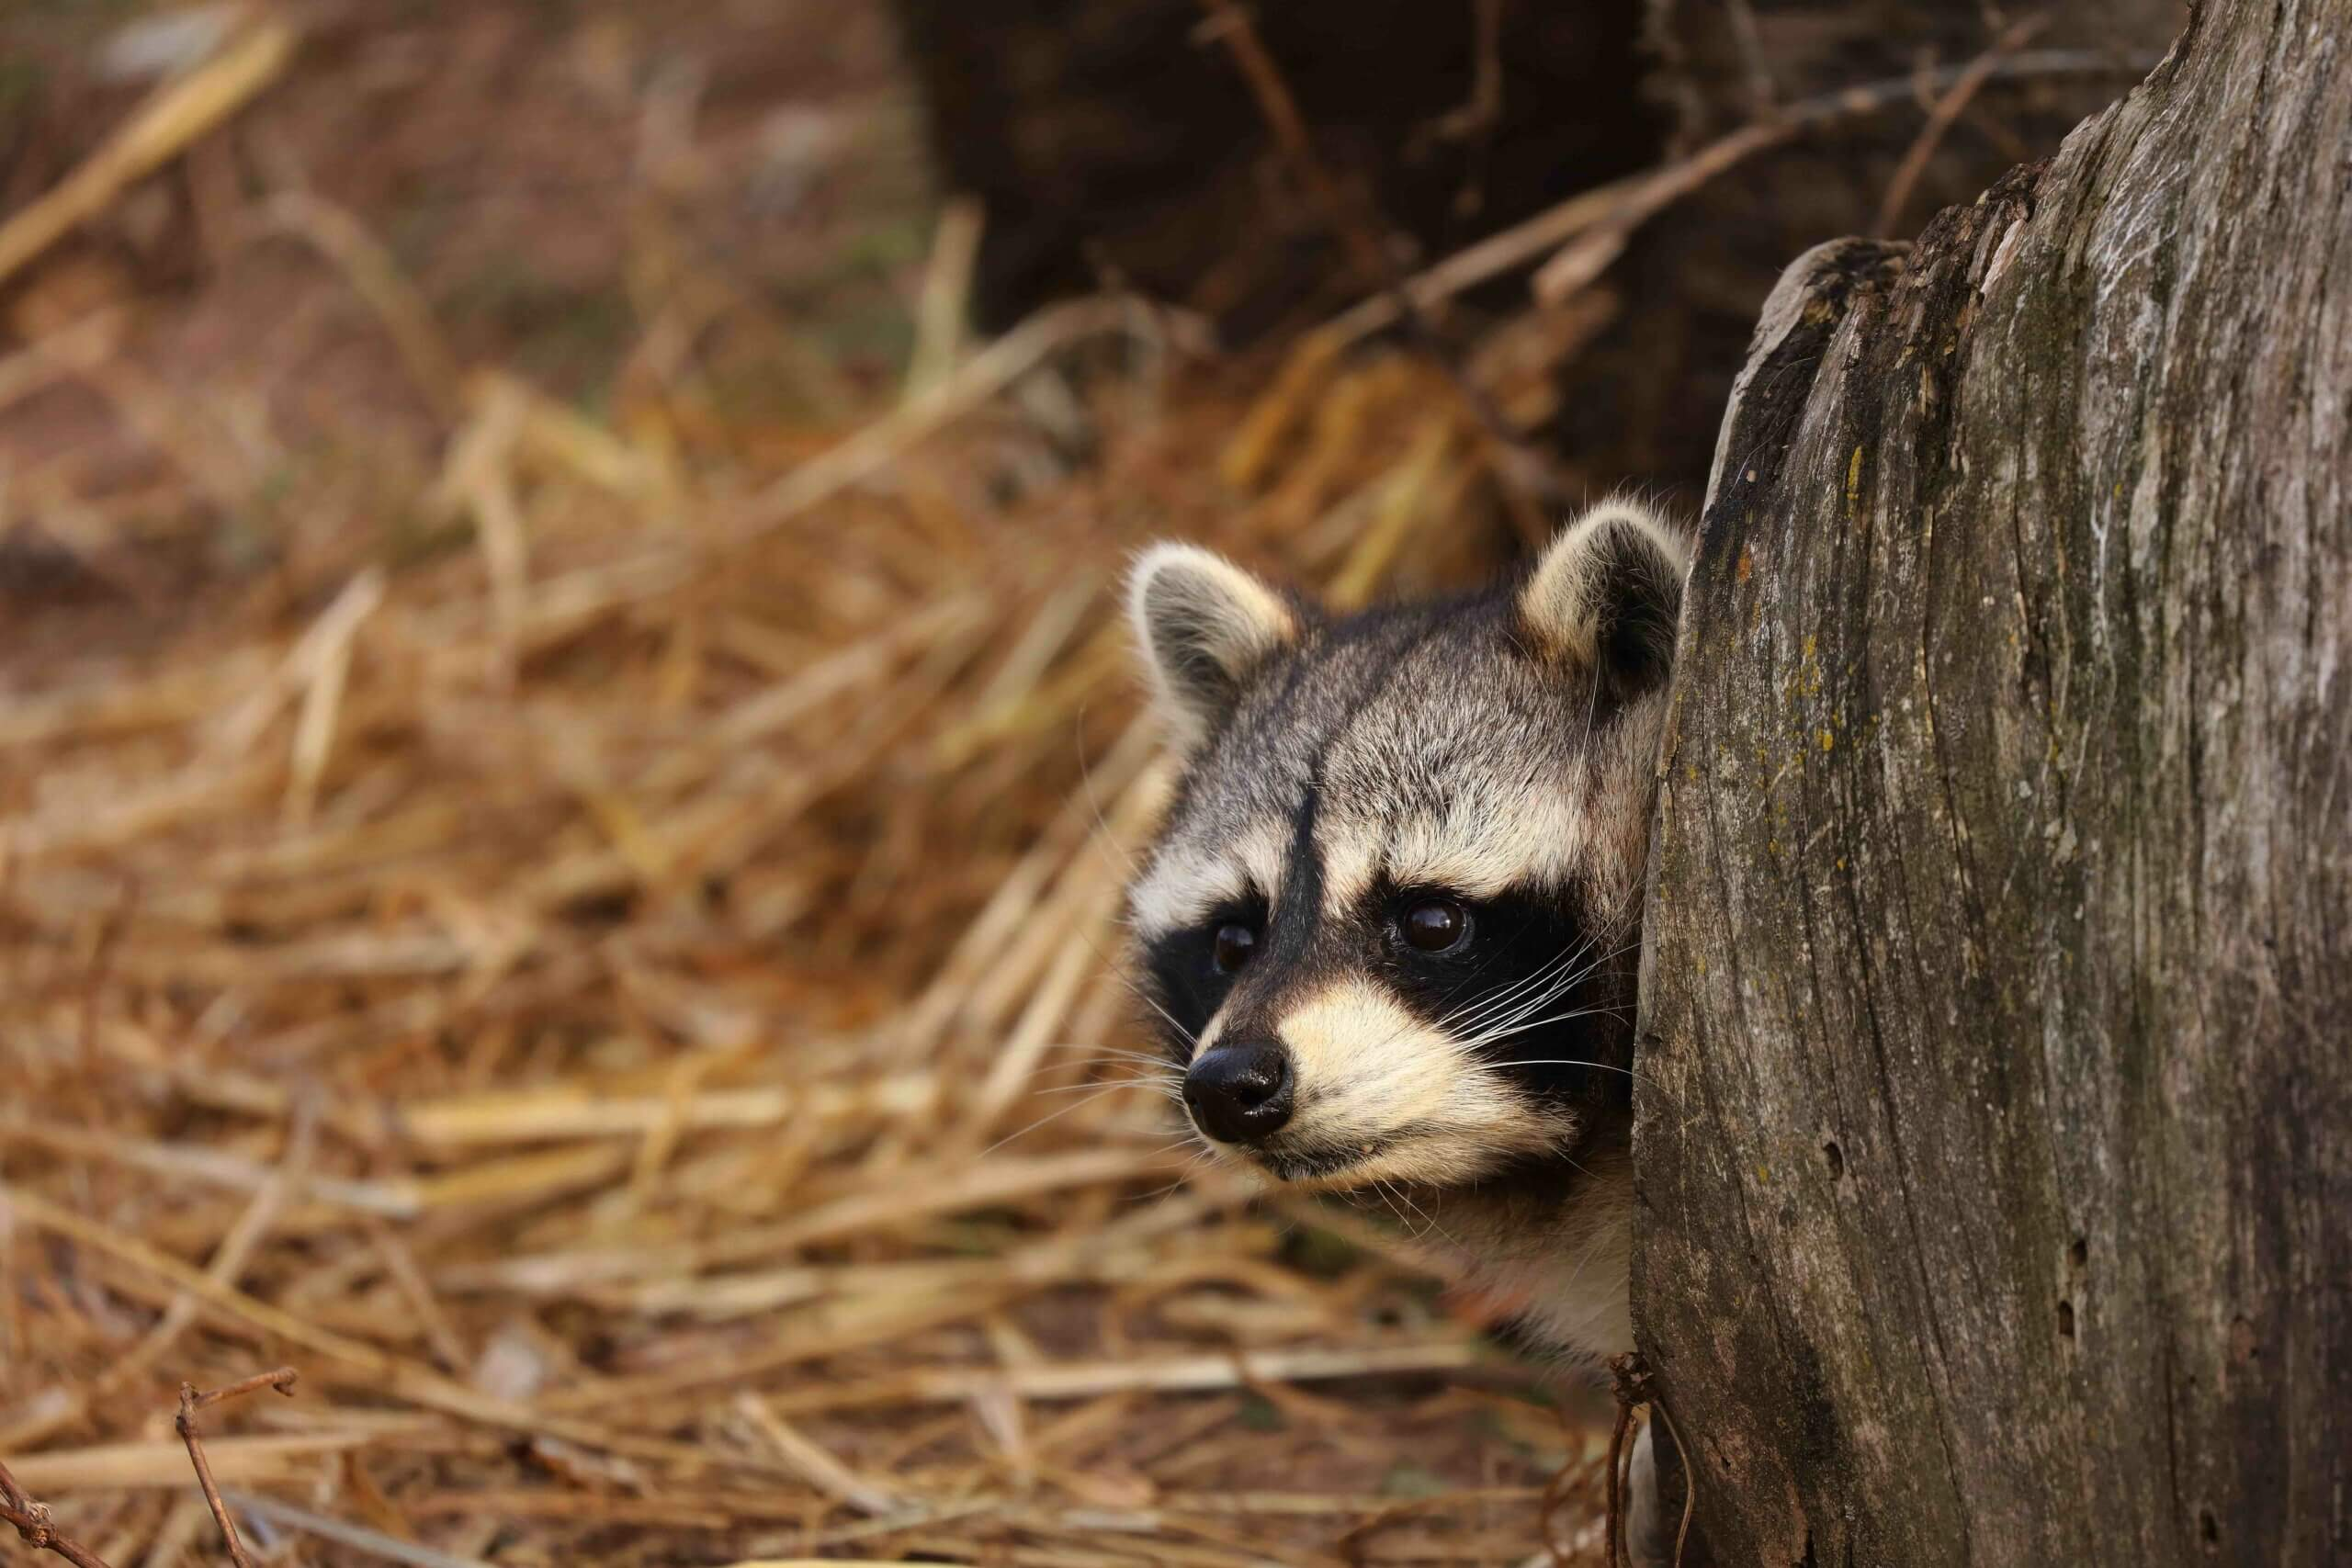 A racoon peeking out from behind a tree stump.